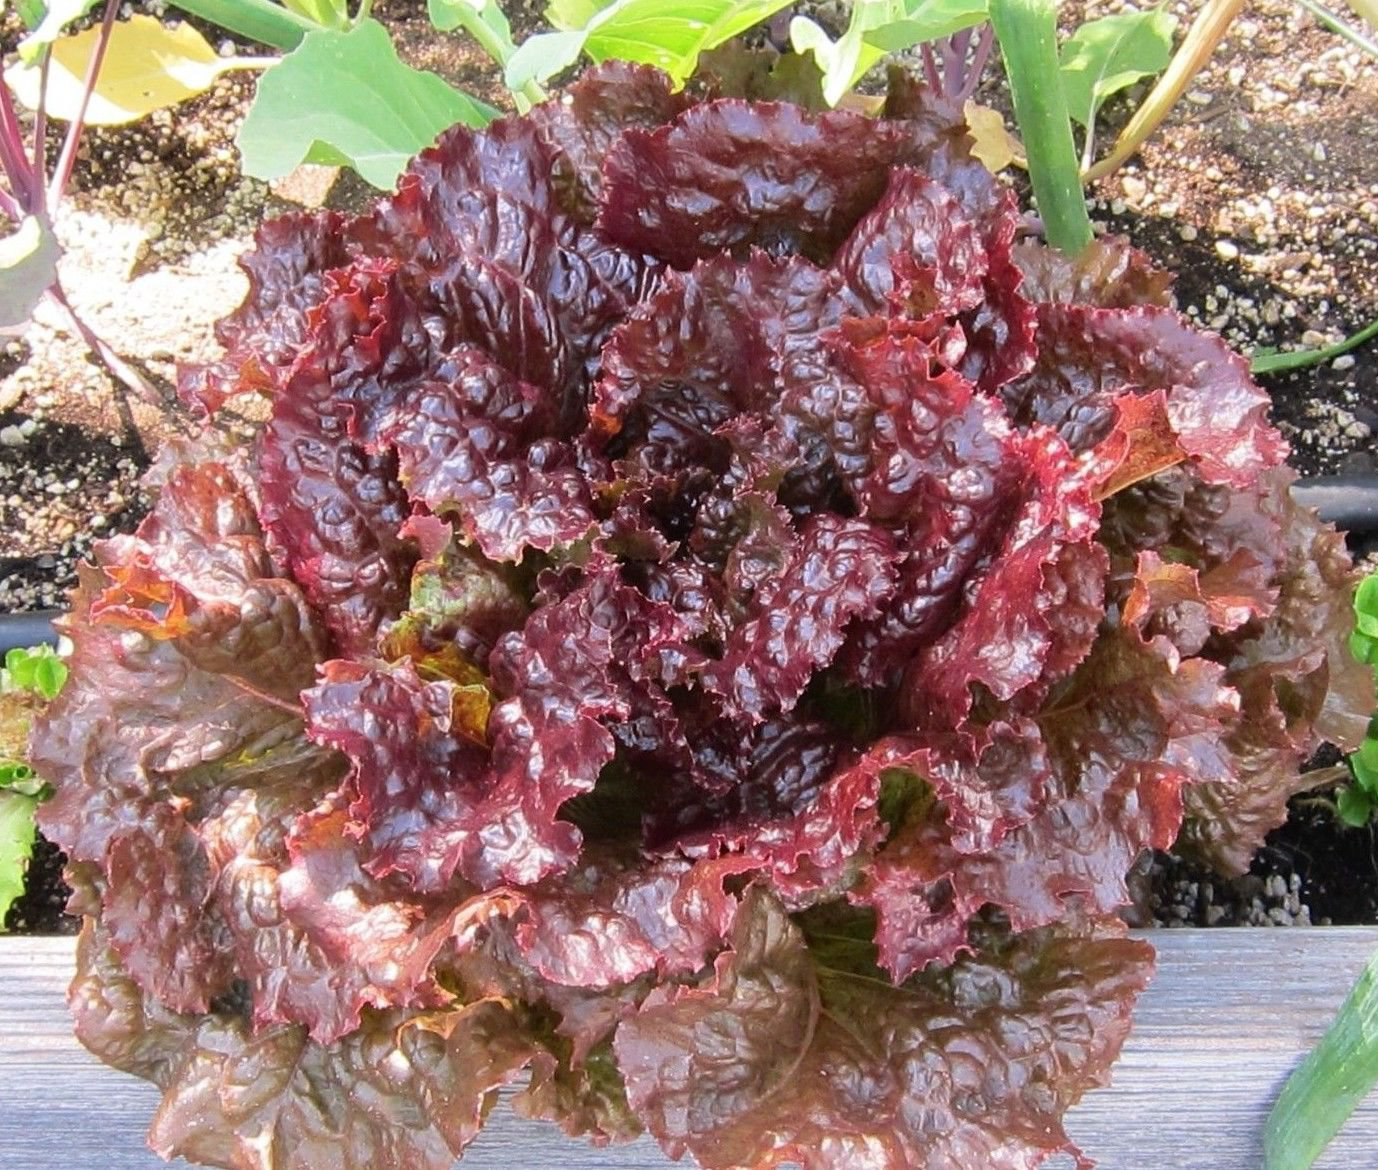 Ruby leaf Lettuce Lactuca sativa 3000 seeds * NON GMO * ez grow * *SHIPPING FROM US* CombSH F46